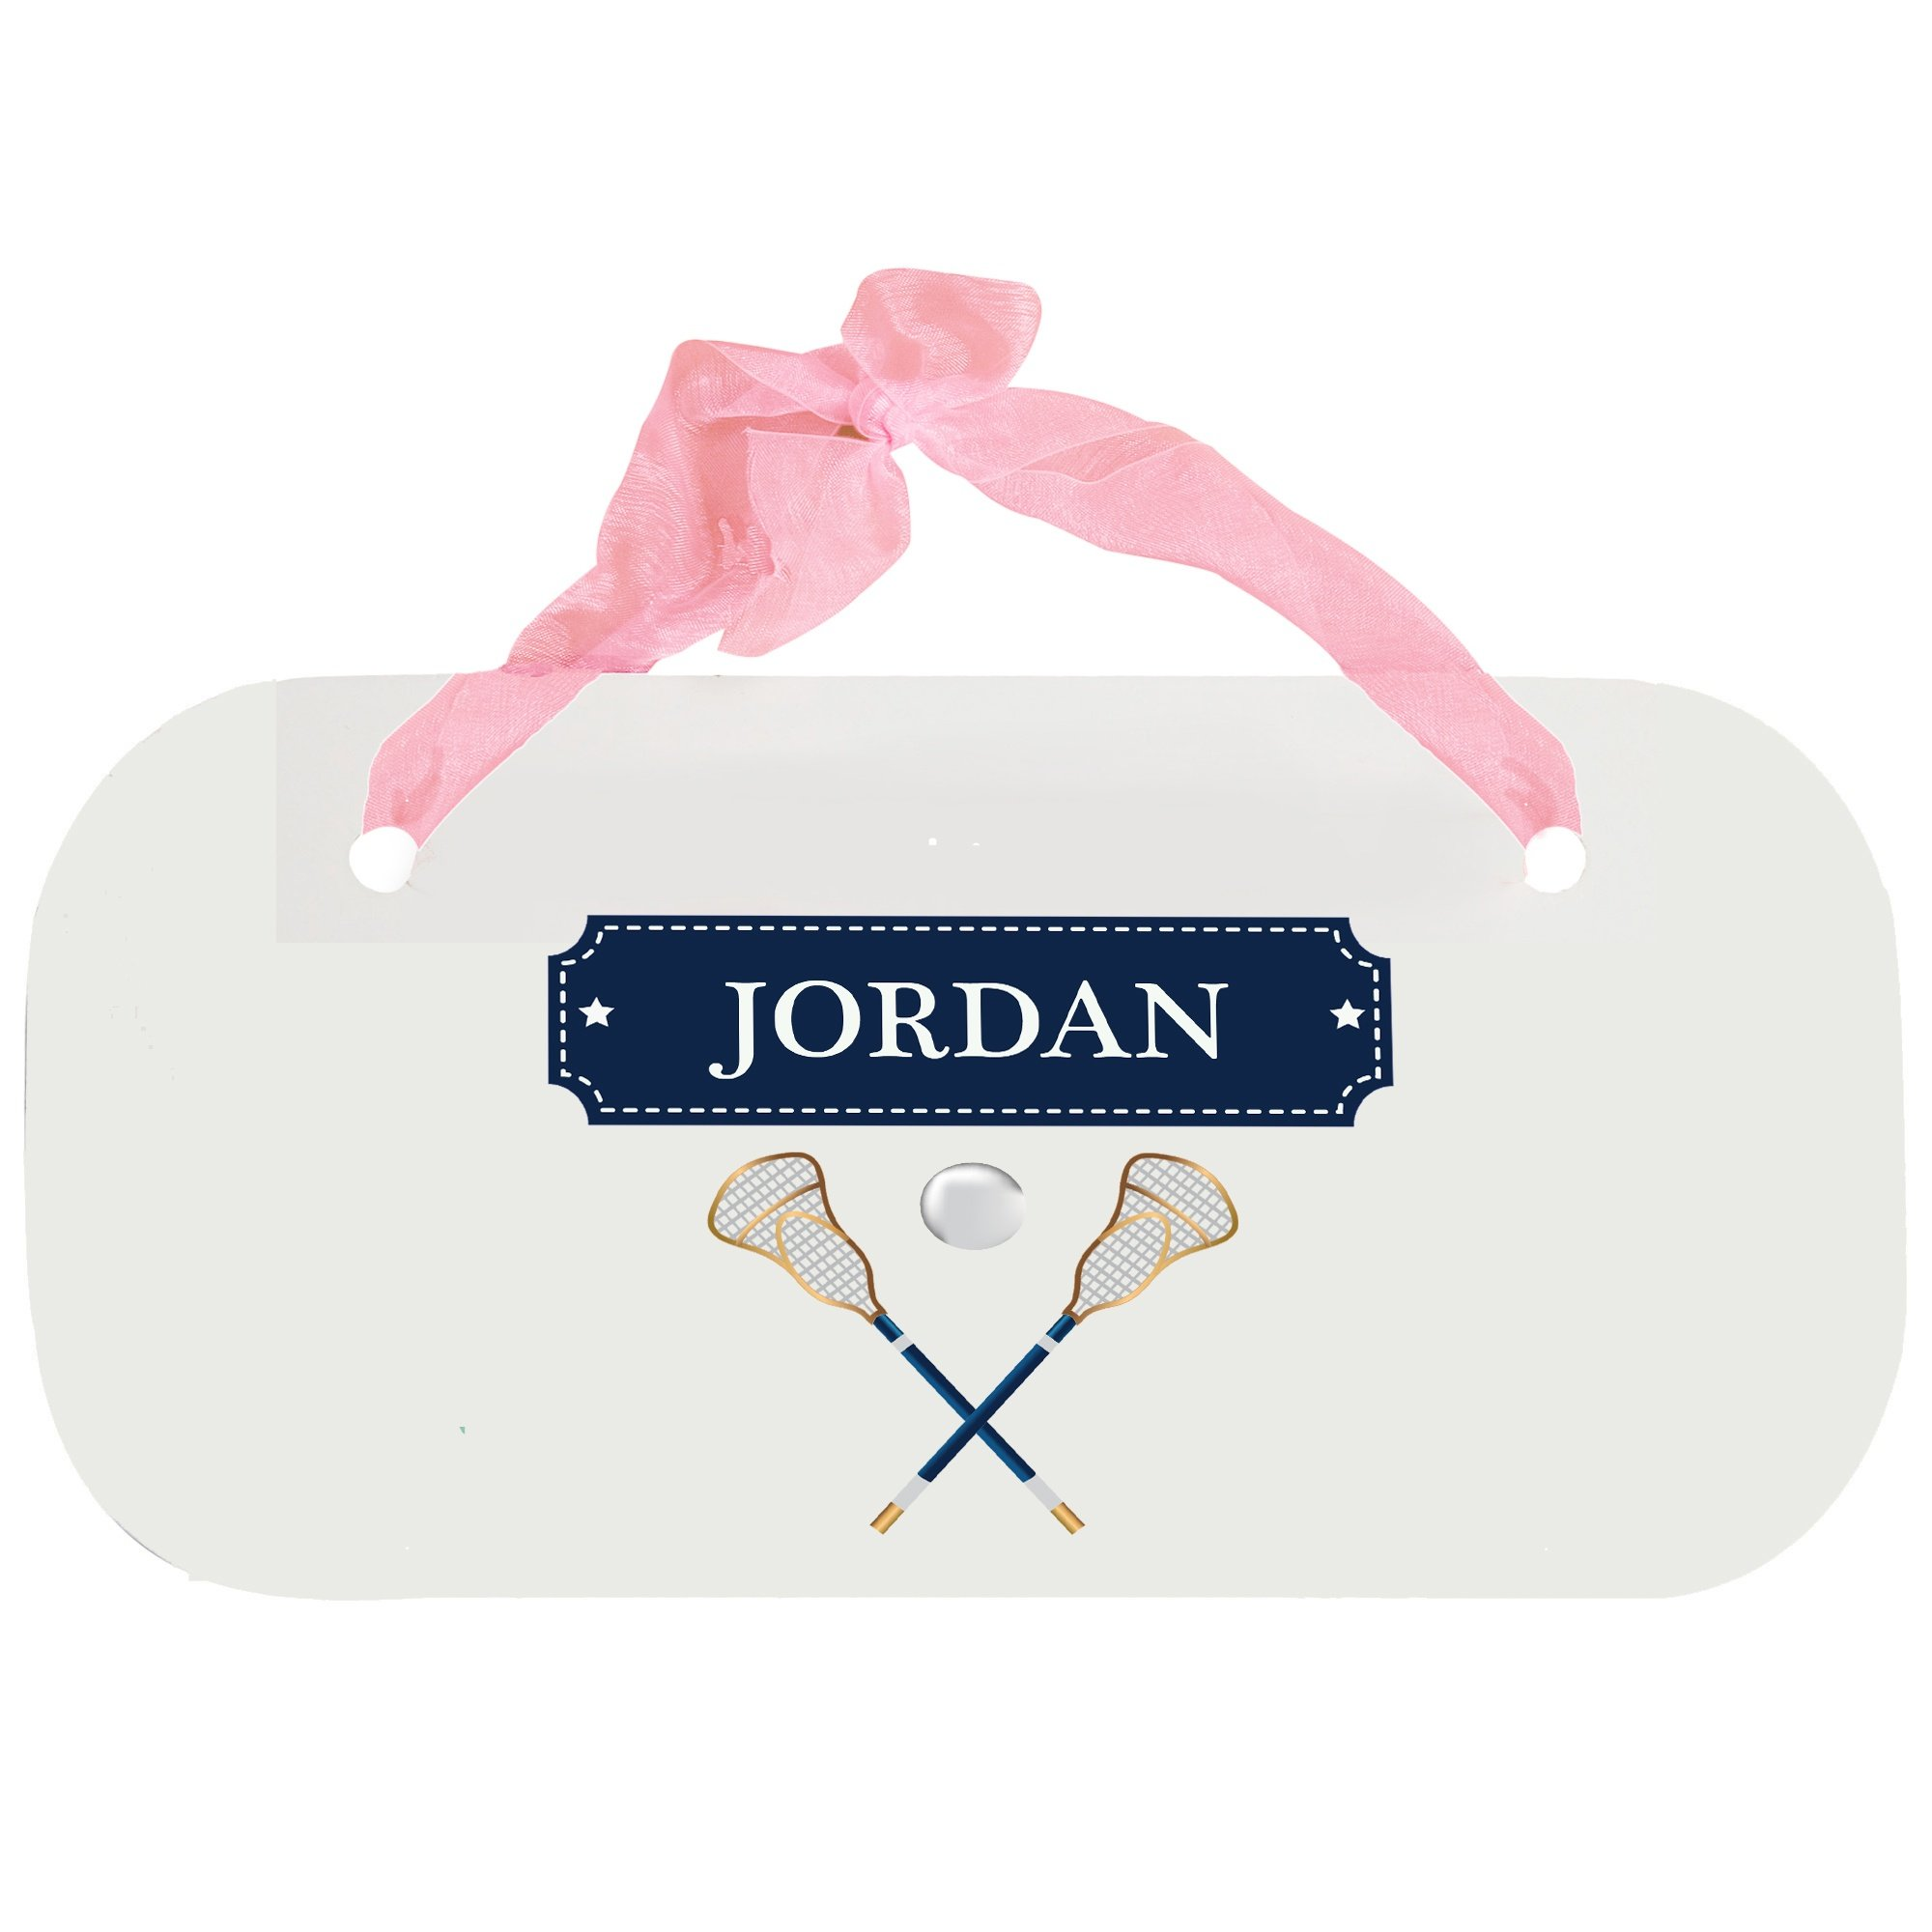 Personalized Lacrosse Sticks Wooden Door Hanger With Blue Ribbon